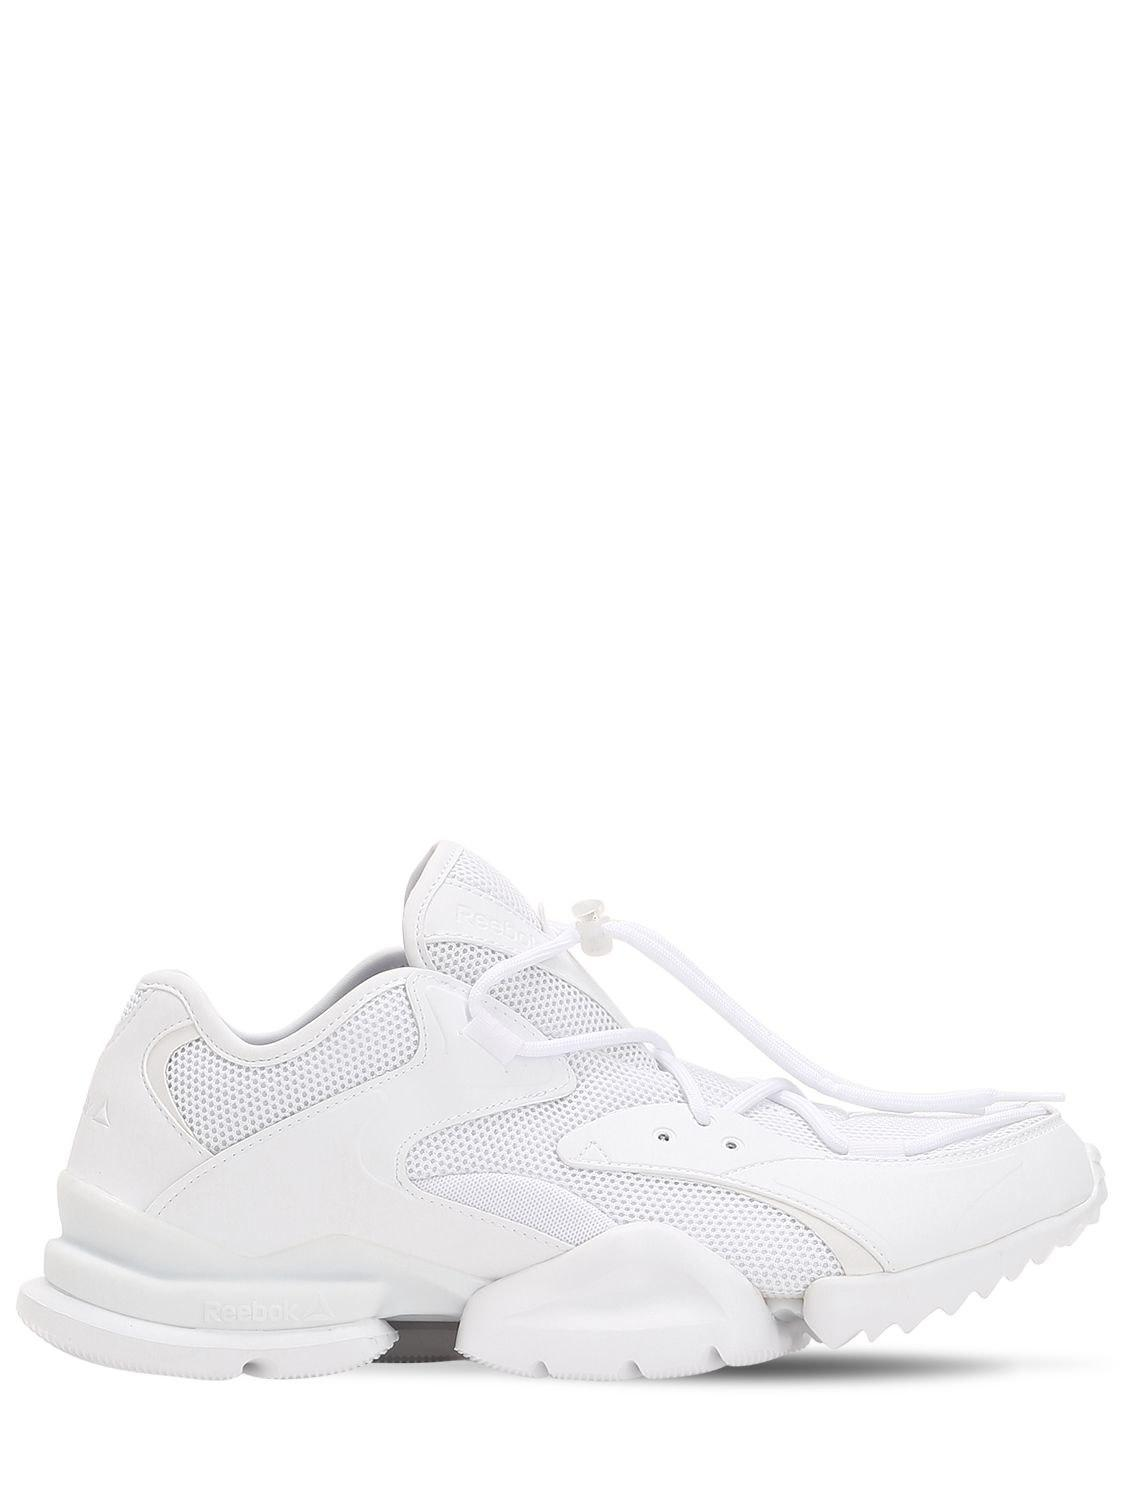 white run r.96 sneakers Reebok UpKLbHo